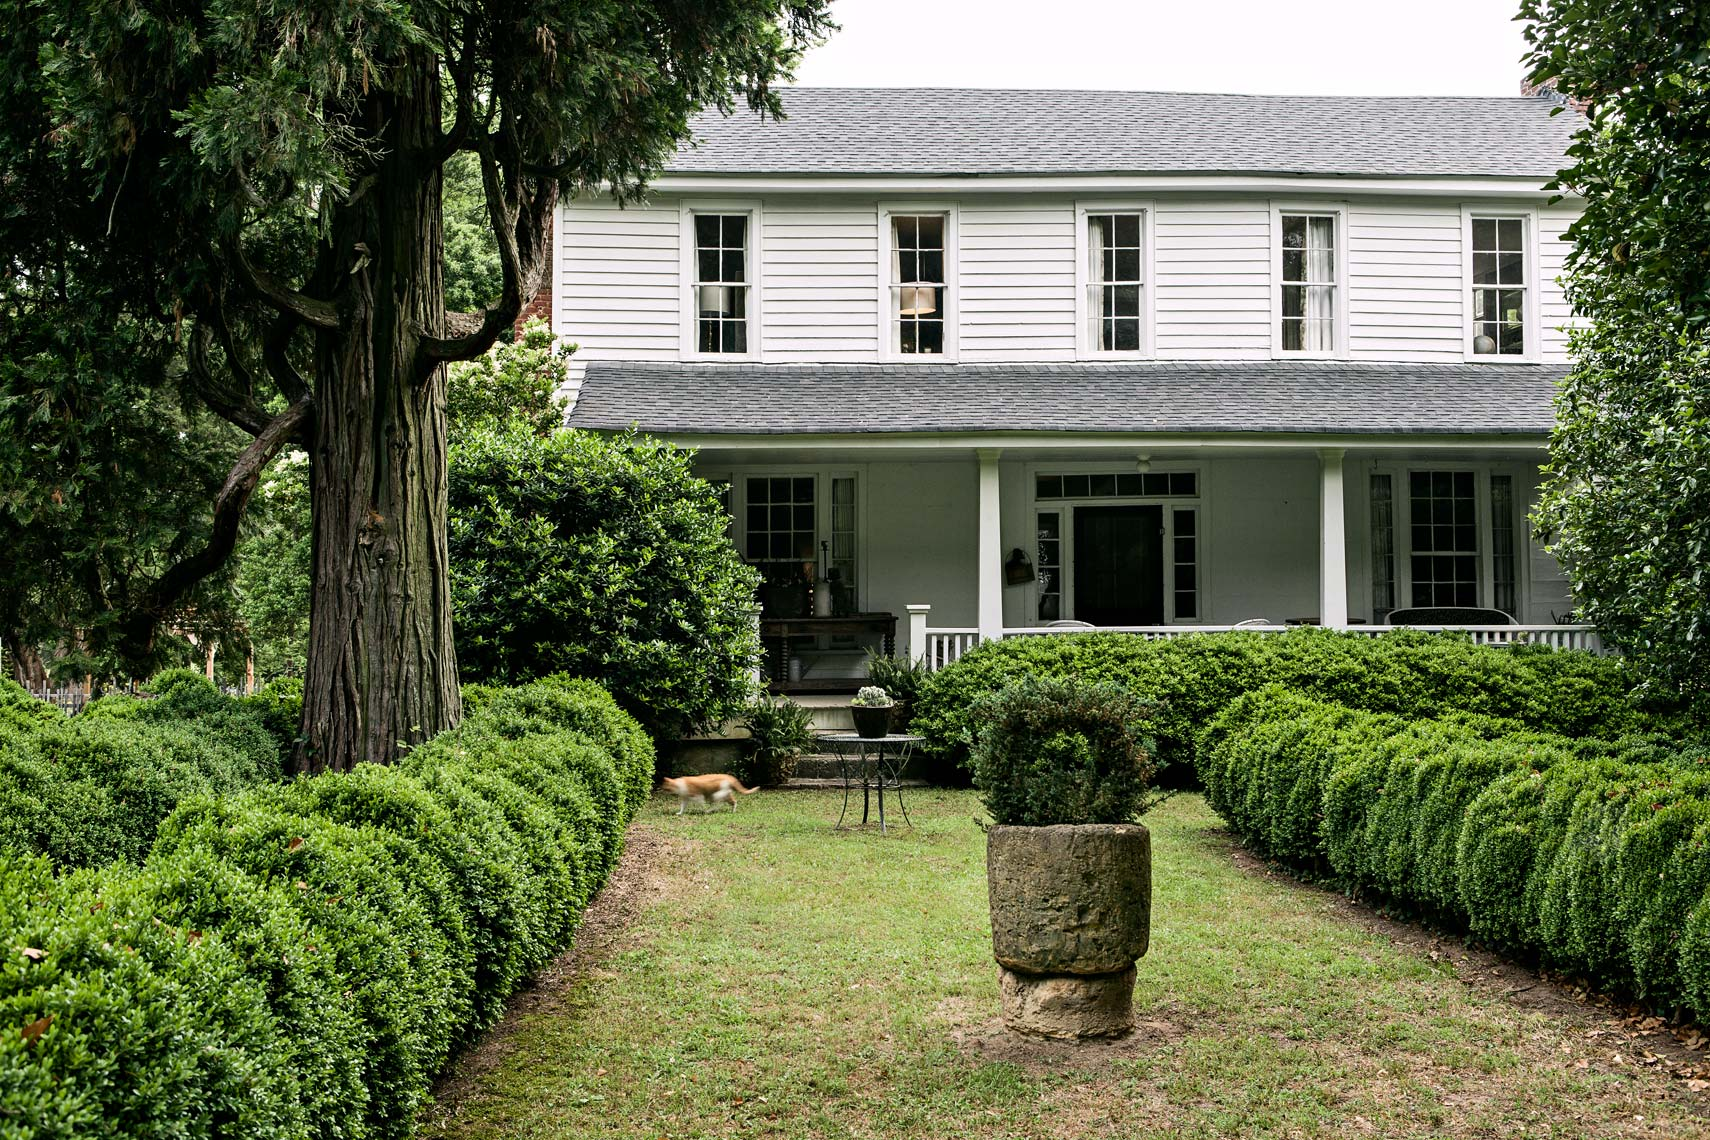 Architectural design photograph of plantation farm house by Atlanta editorial photographer